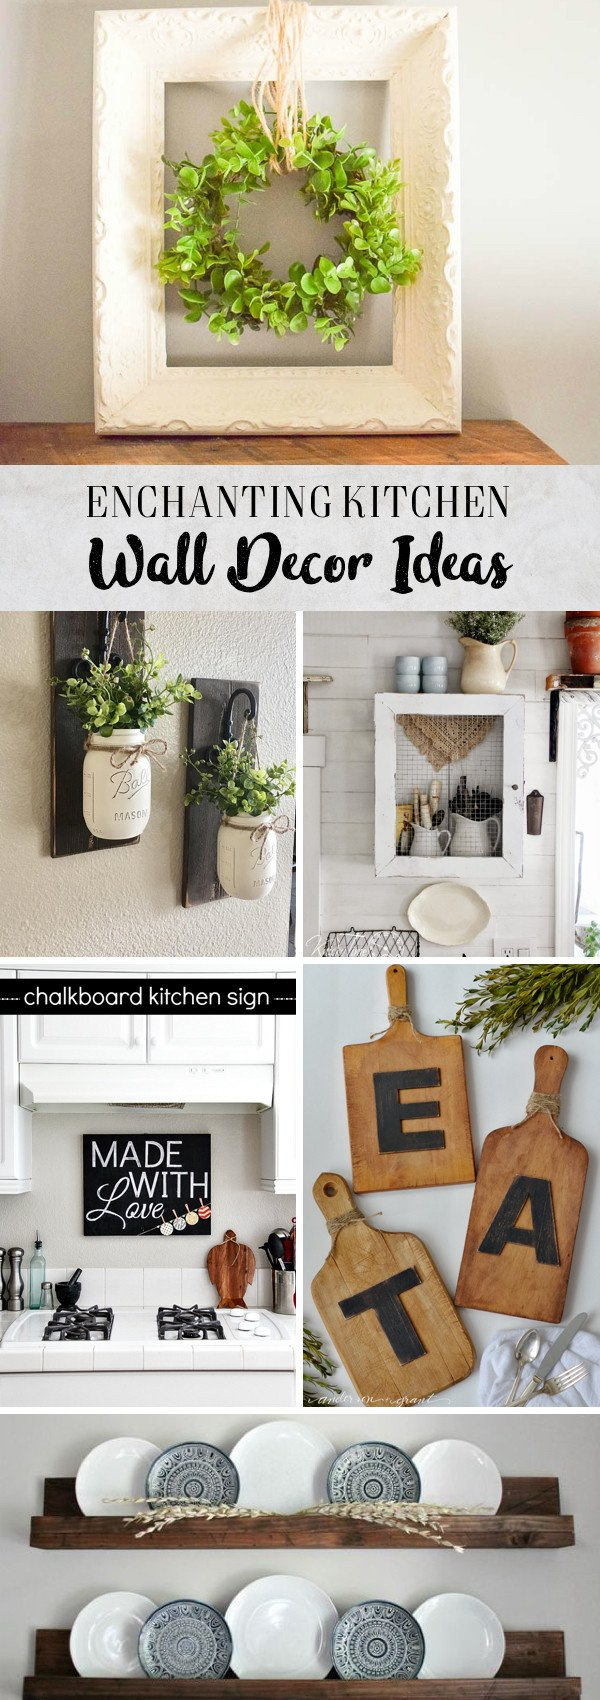 Wall Decor Ideas for Kitchen Luxury 30 Enchanting Kitchen Wall Decor Ideas that are Oozing with Style